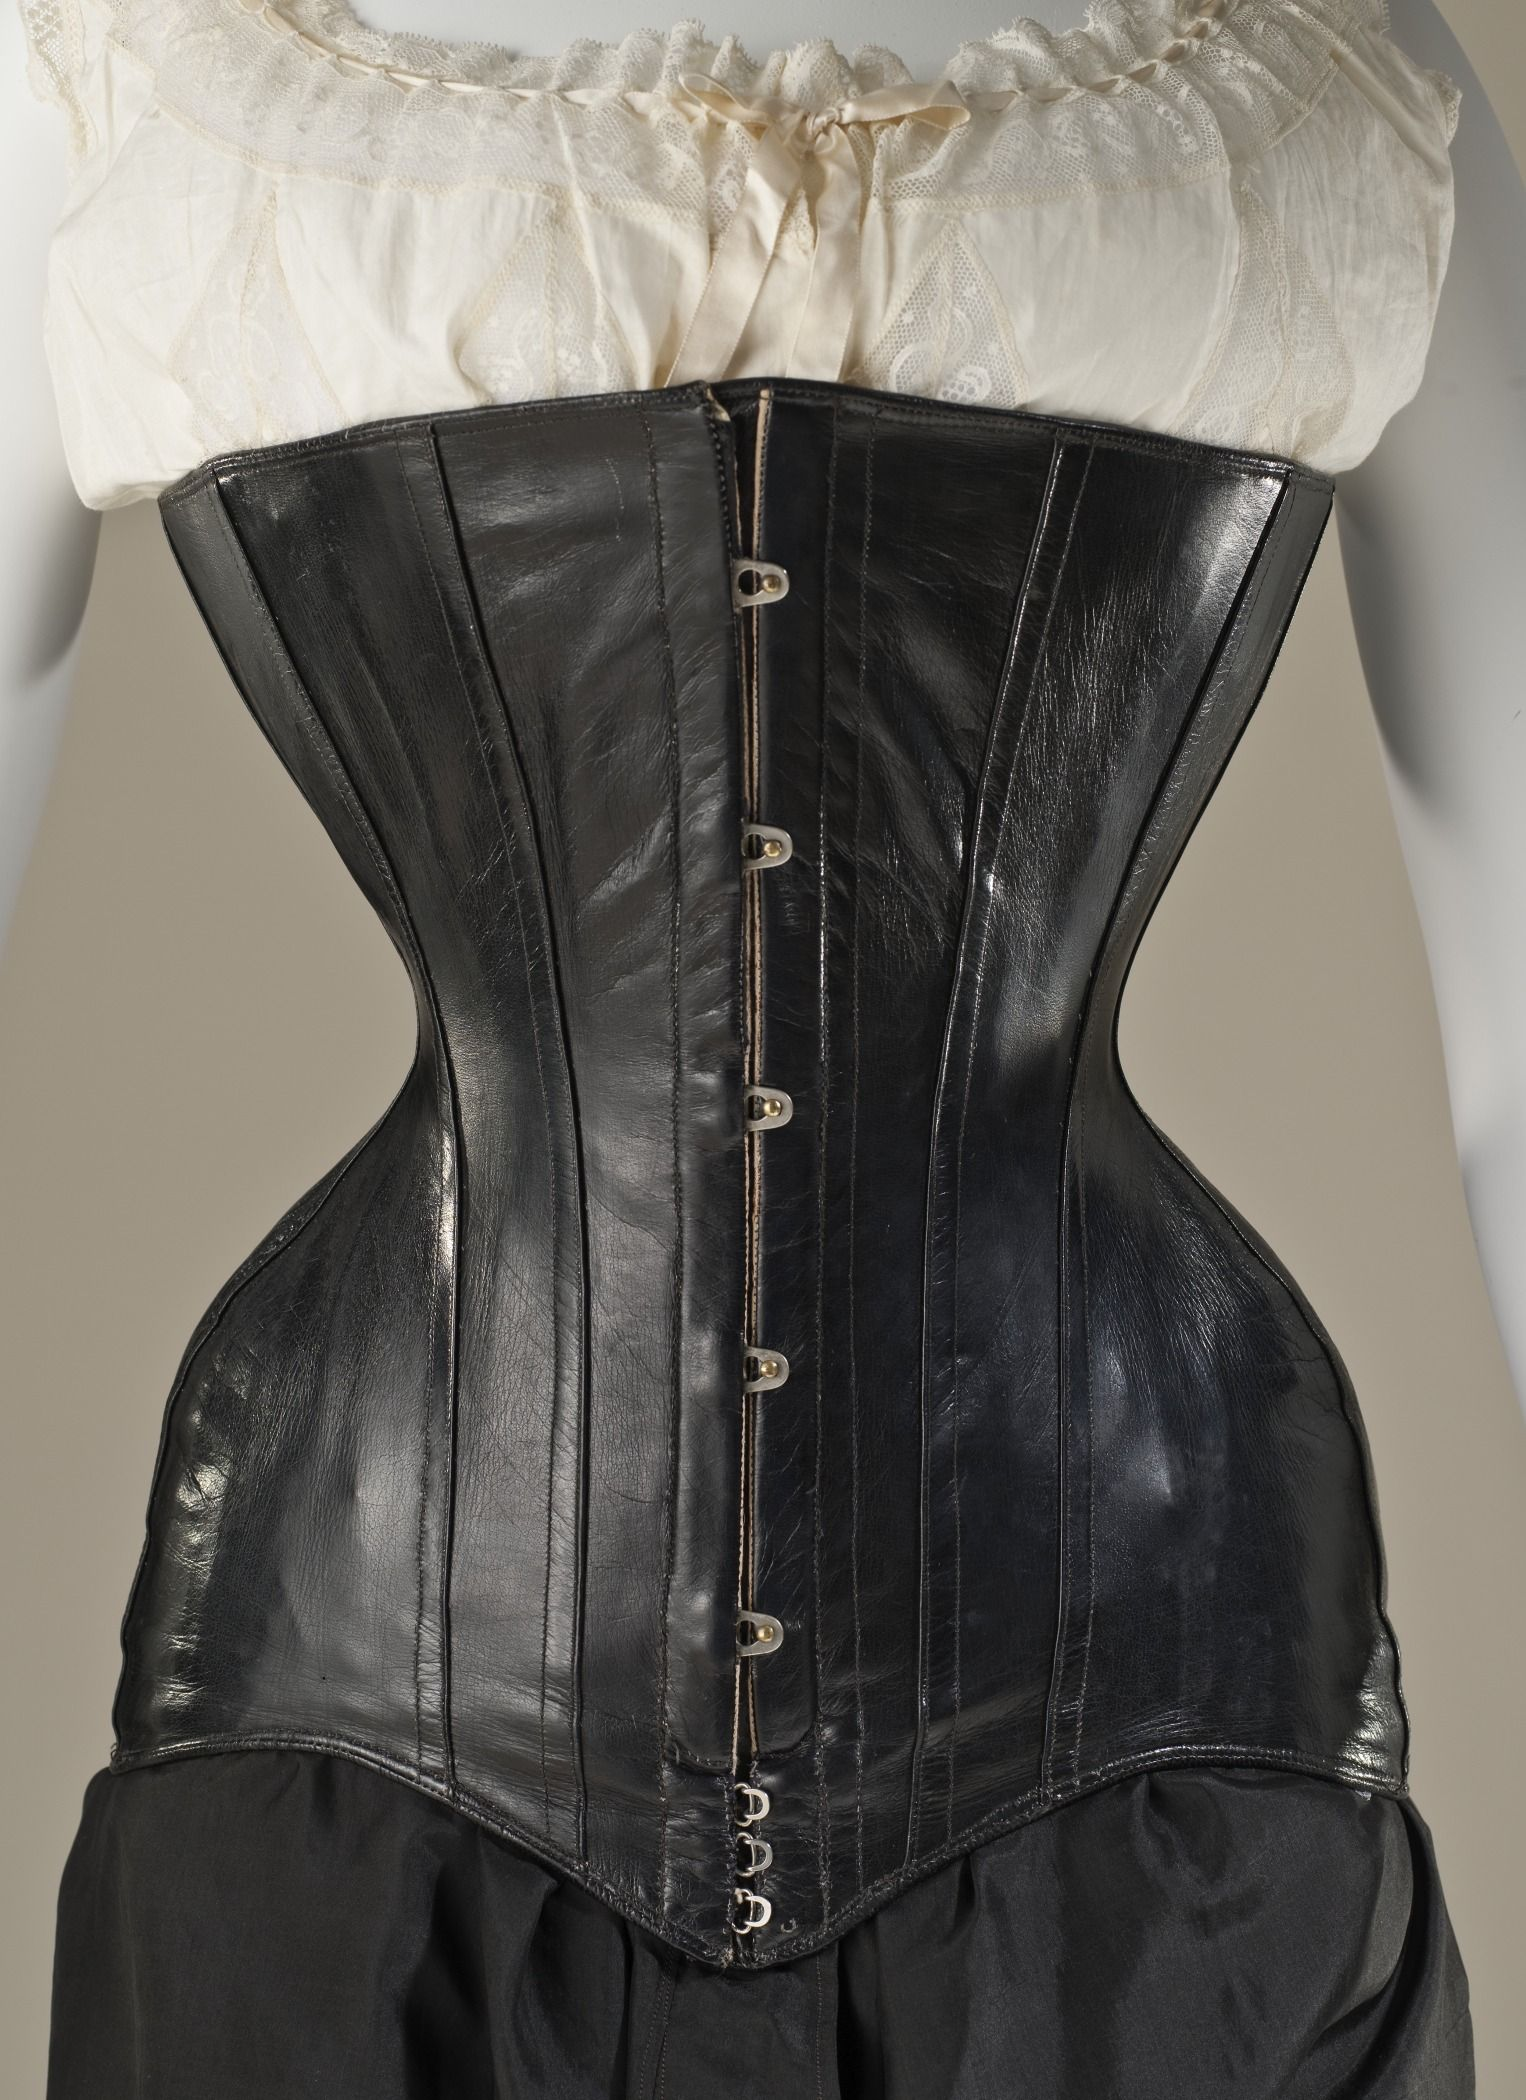 1900, English, Leather And Metal.